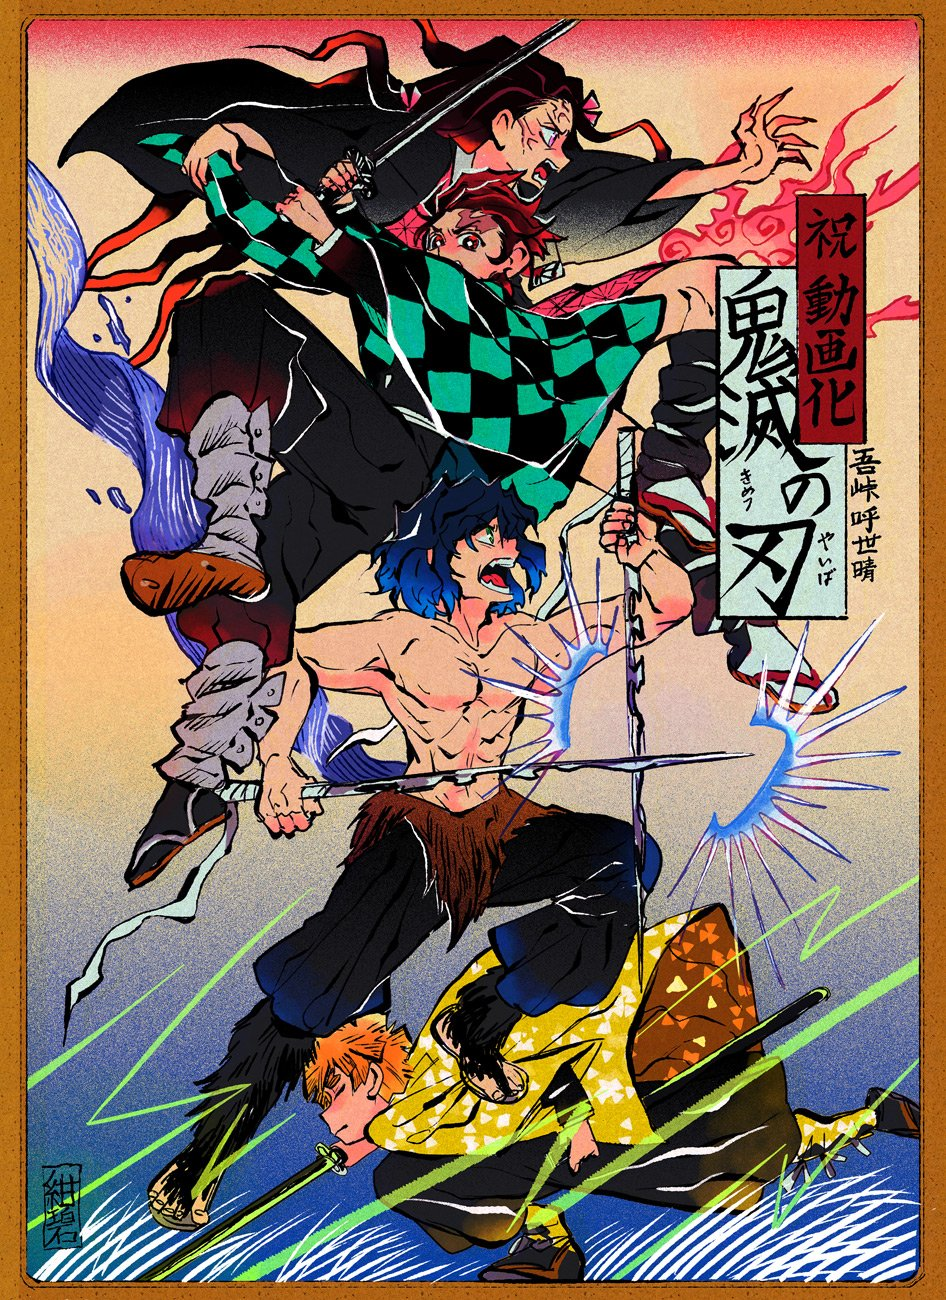 1girl 3boys agatsuma_zenitsu attack black_hair blue_hair border bright_pupils brown_border checkered_pattern copyright_name dual_wielding fangs fingernails gradient_hair haori hashibira_inosuke highres holding japanese_clothes kamado_nezuko kamado_tanjirou ken_(shiyu) kimetsu_no_yaiba kimono long_hair multicolored_hair multiple_boys scar sharp_fingernails veins